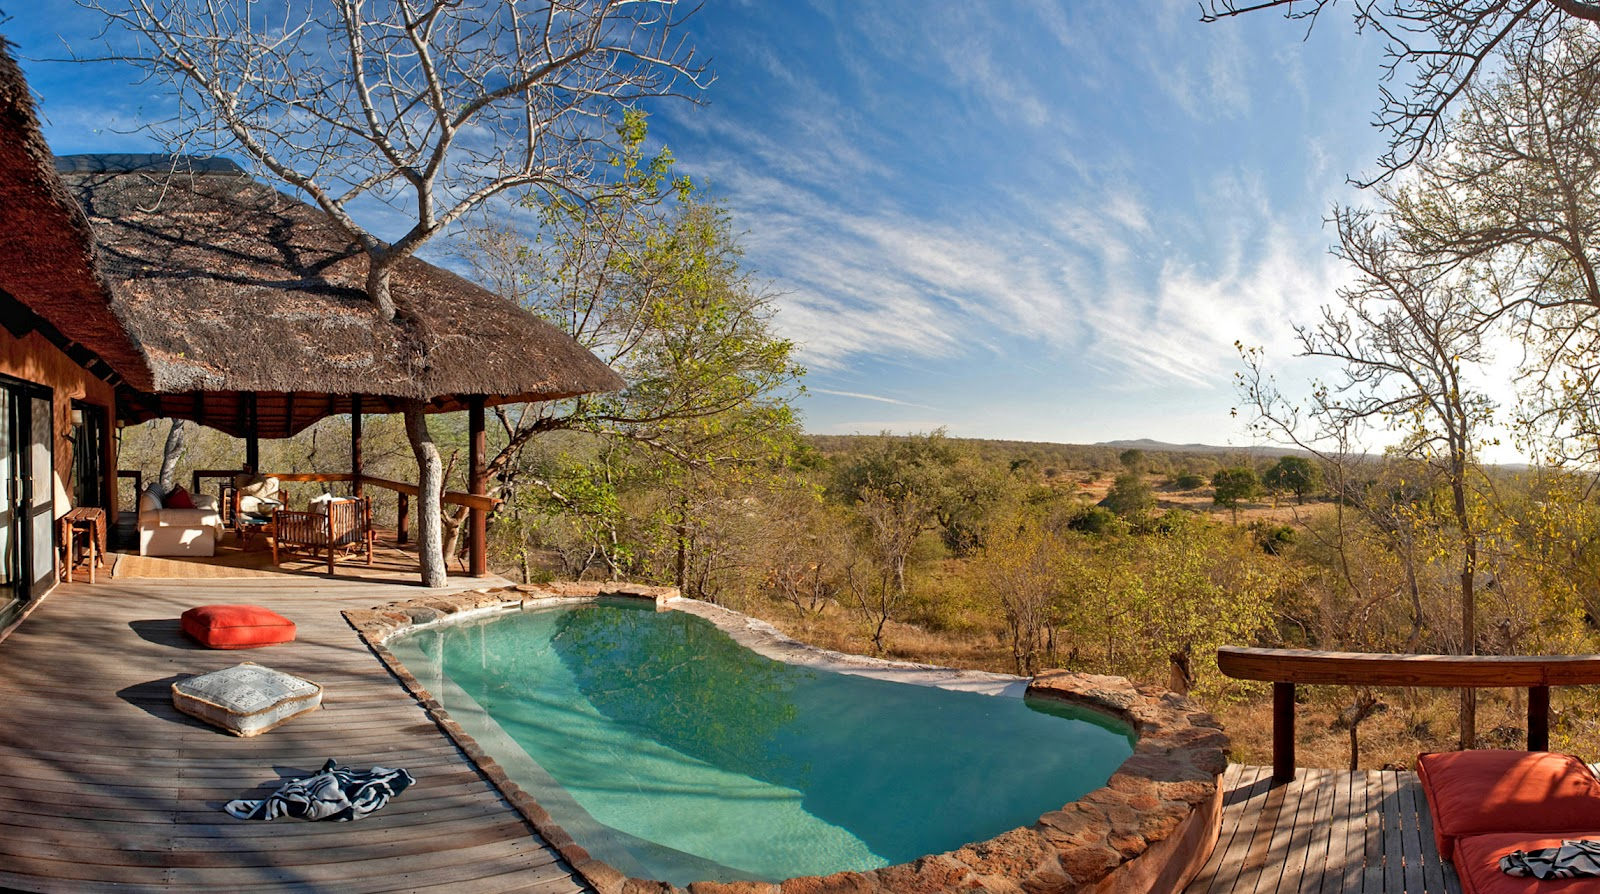 Travel South Africa Luxury Safaris In Limpopo Province